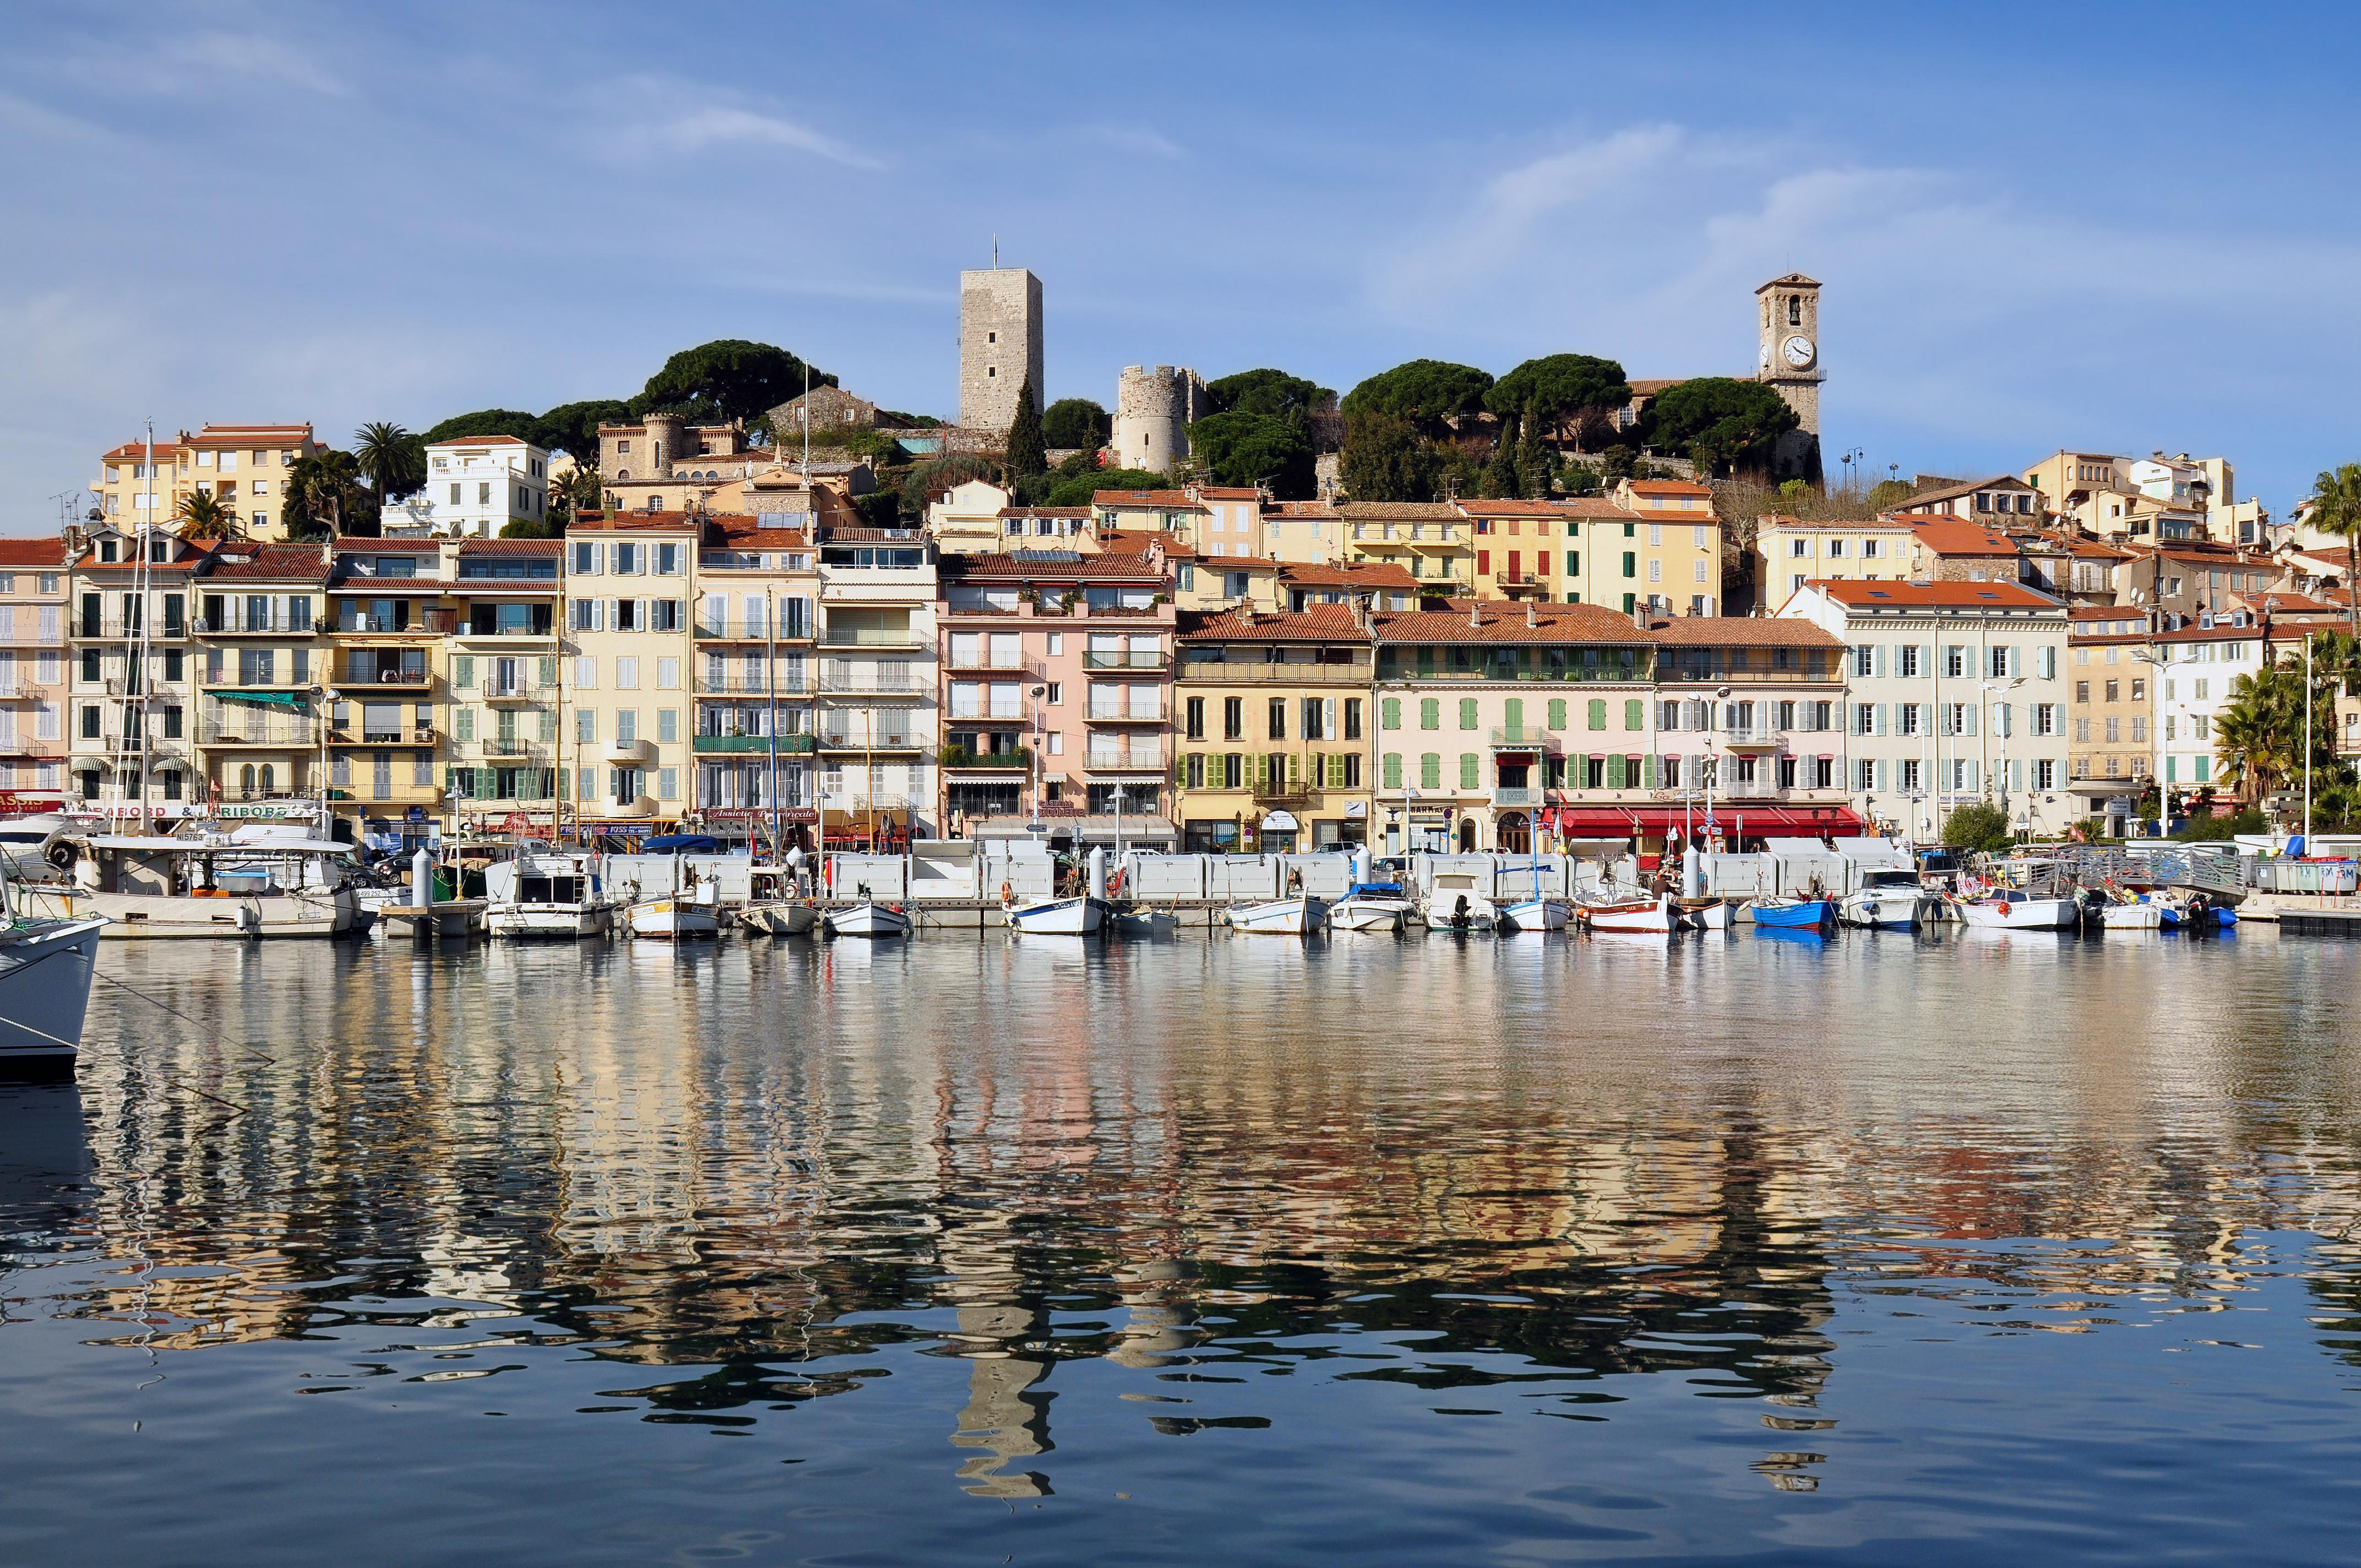 How to Spend 2 Days in Cannes